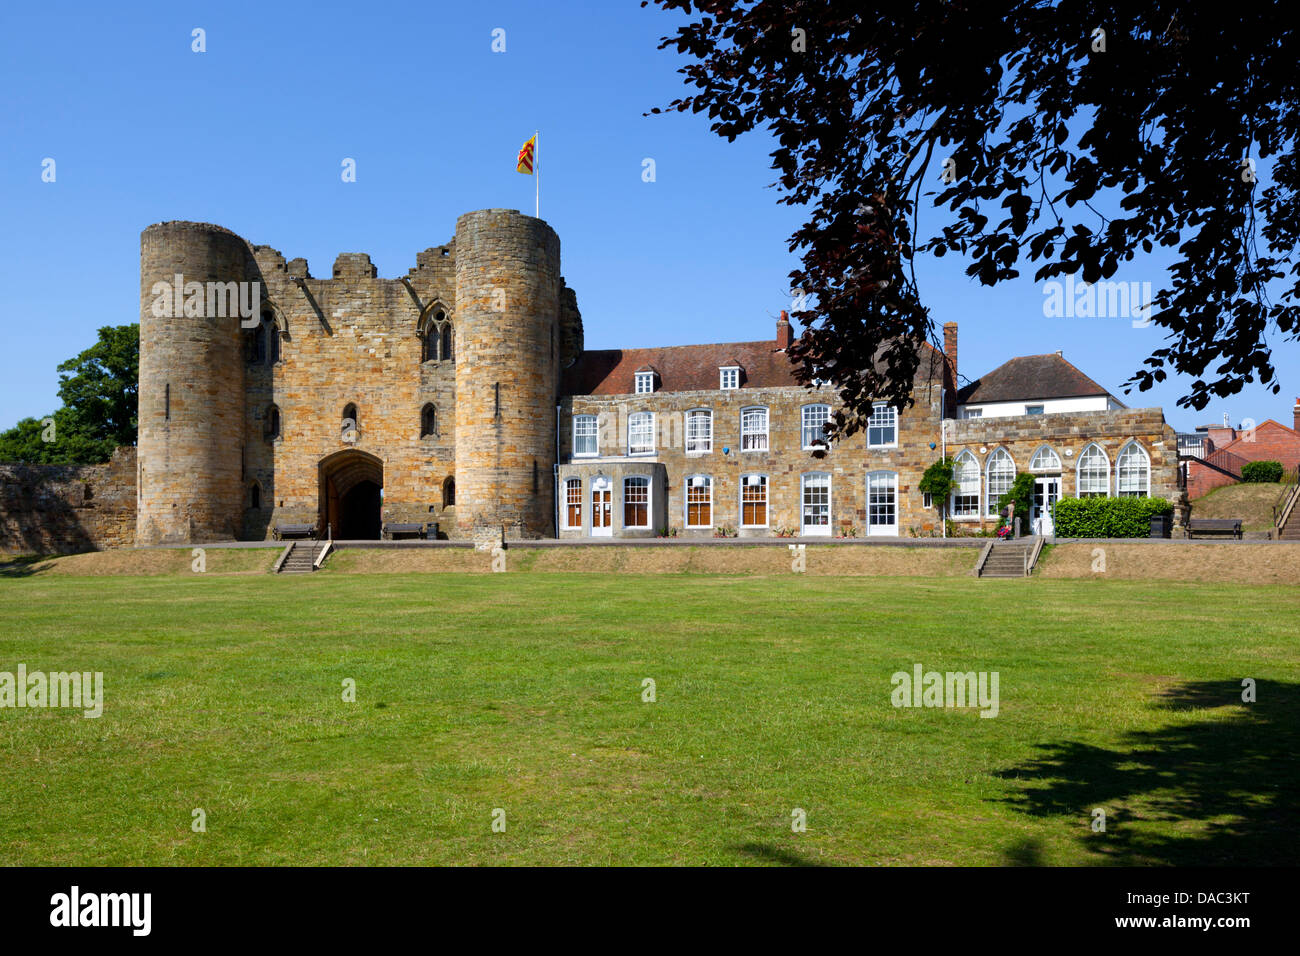 Tonbridge Castle, Tonbridge, Kent, England, UK - Stock Image